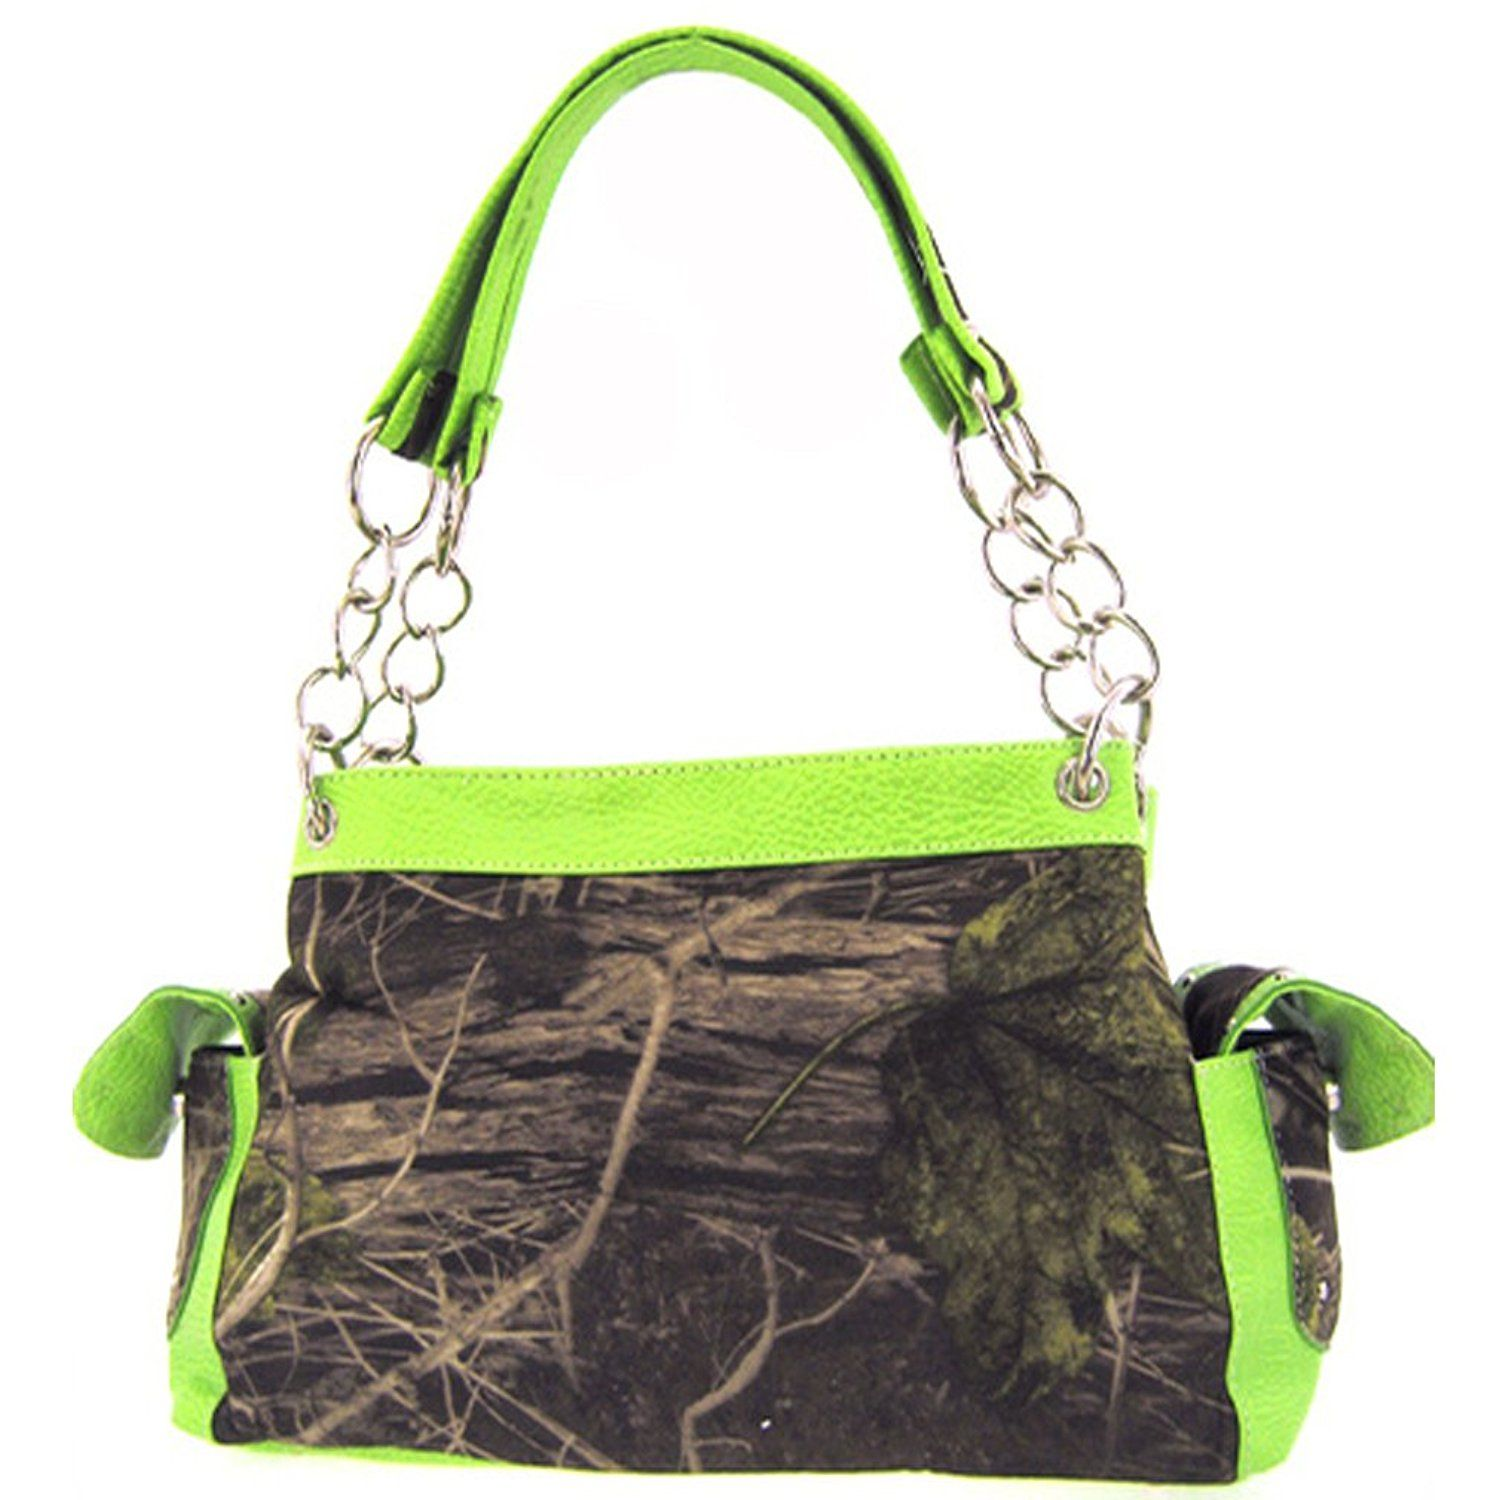 Camouflage Satchel Purse Green Trim Camo Chain Straps >>> Click image for more details.